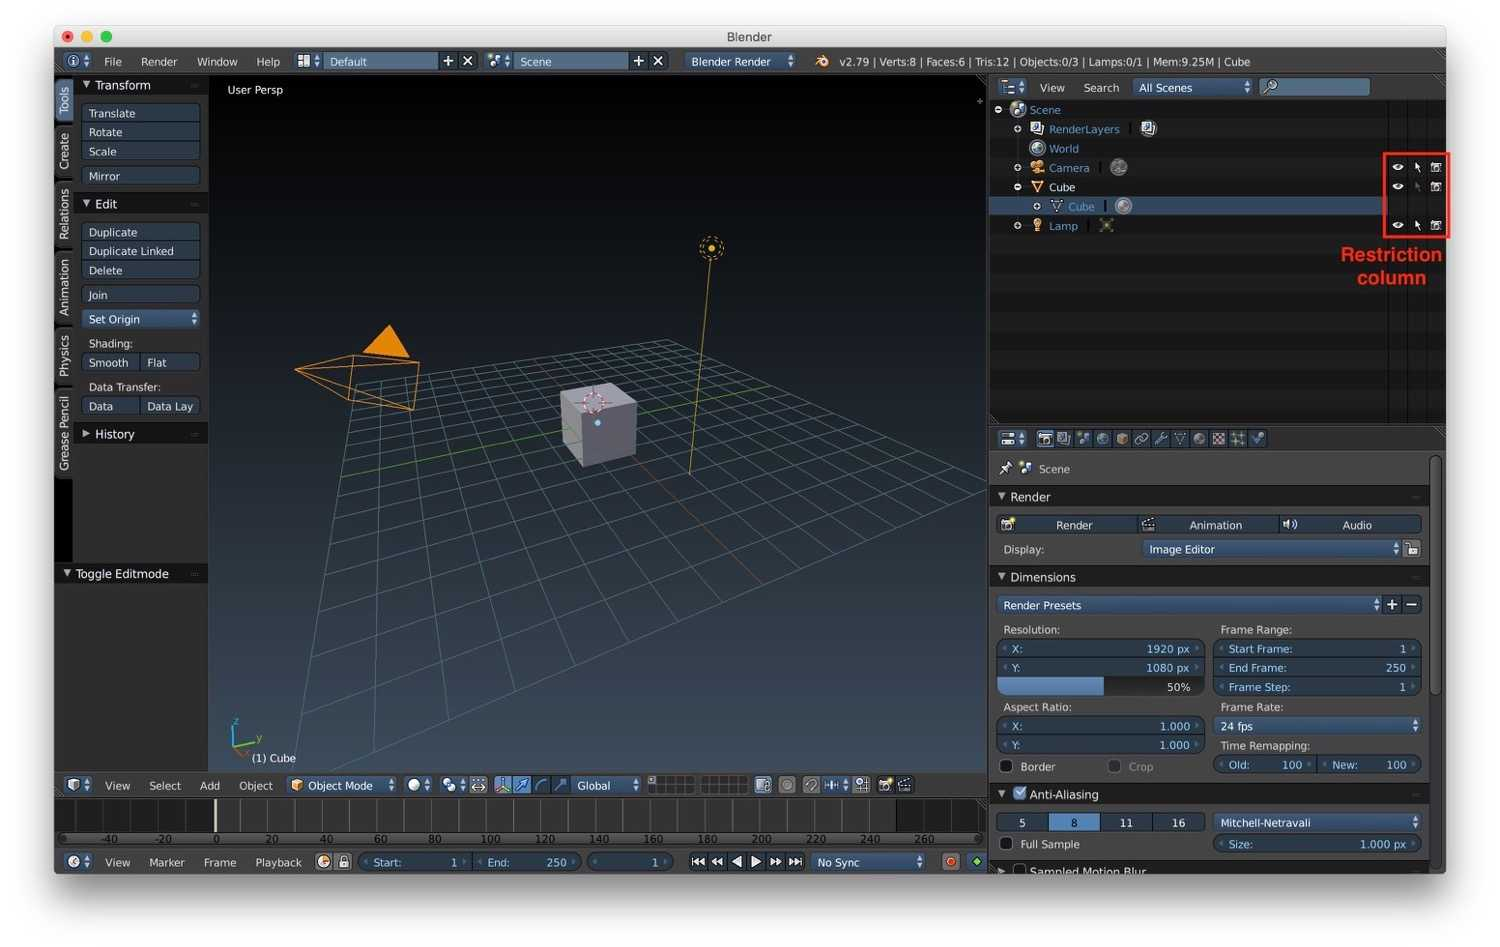 Blender tutorial: outliner, layers, groups, hierarchies and scenes